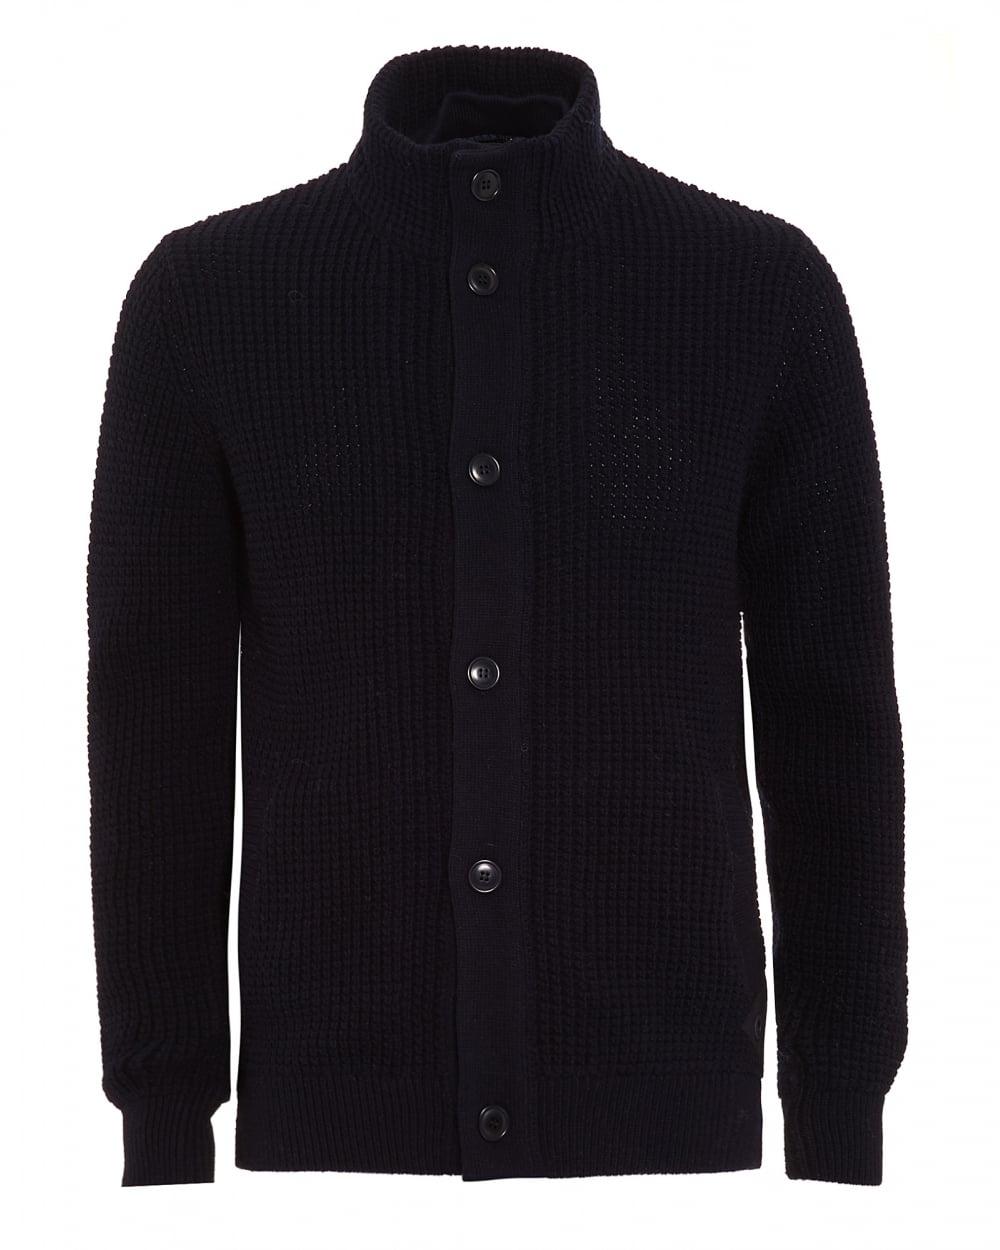 Barbour Lifestyle Mens Cardigan, Helm Button Through Navy Blue Knit